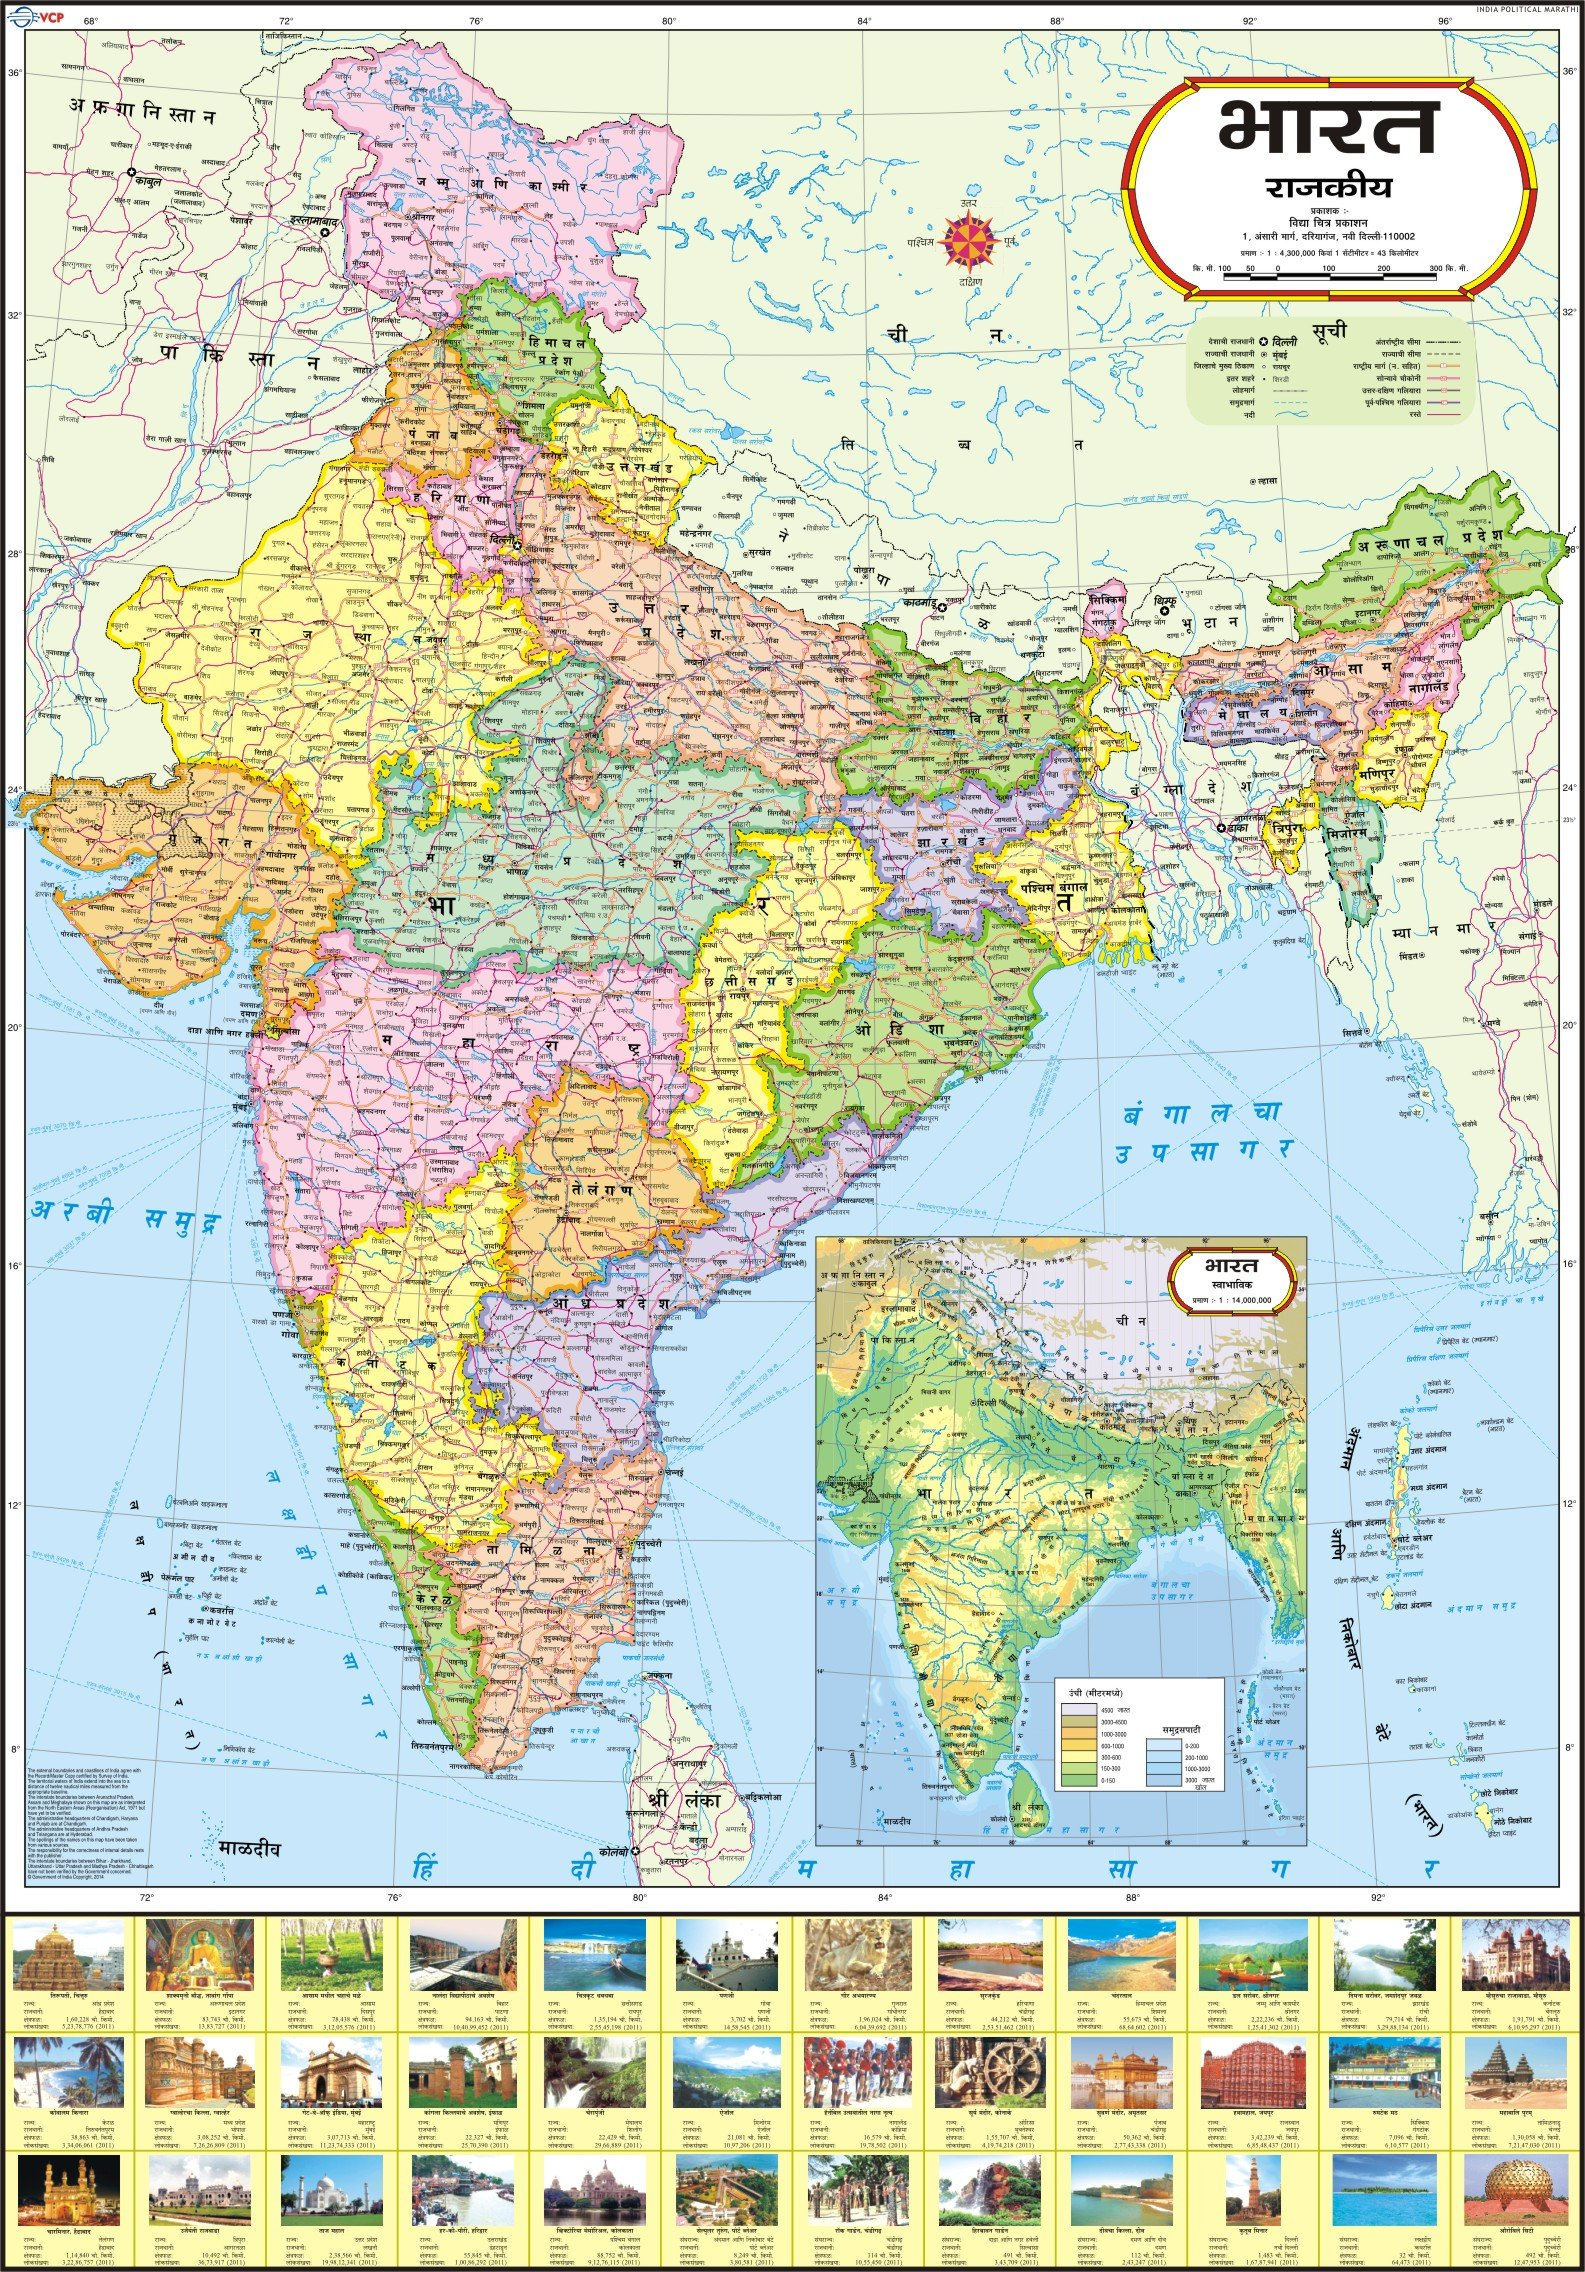 Buy India Political Map Marathi Book Online At Low Prices In - World map image in marathi